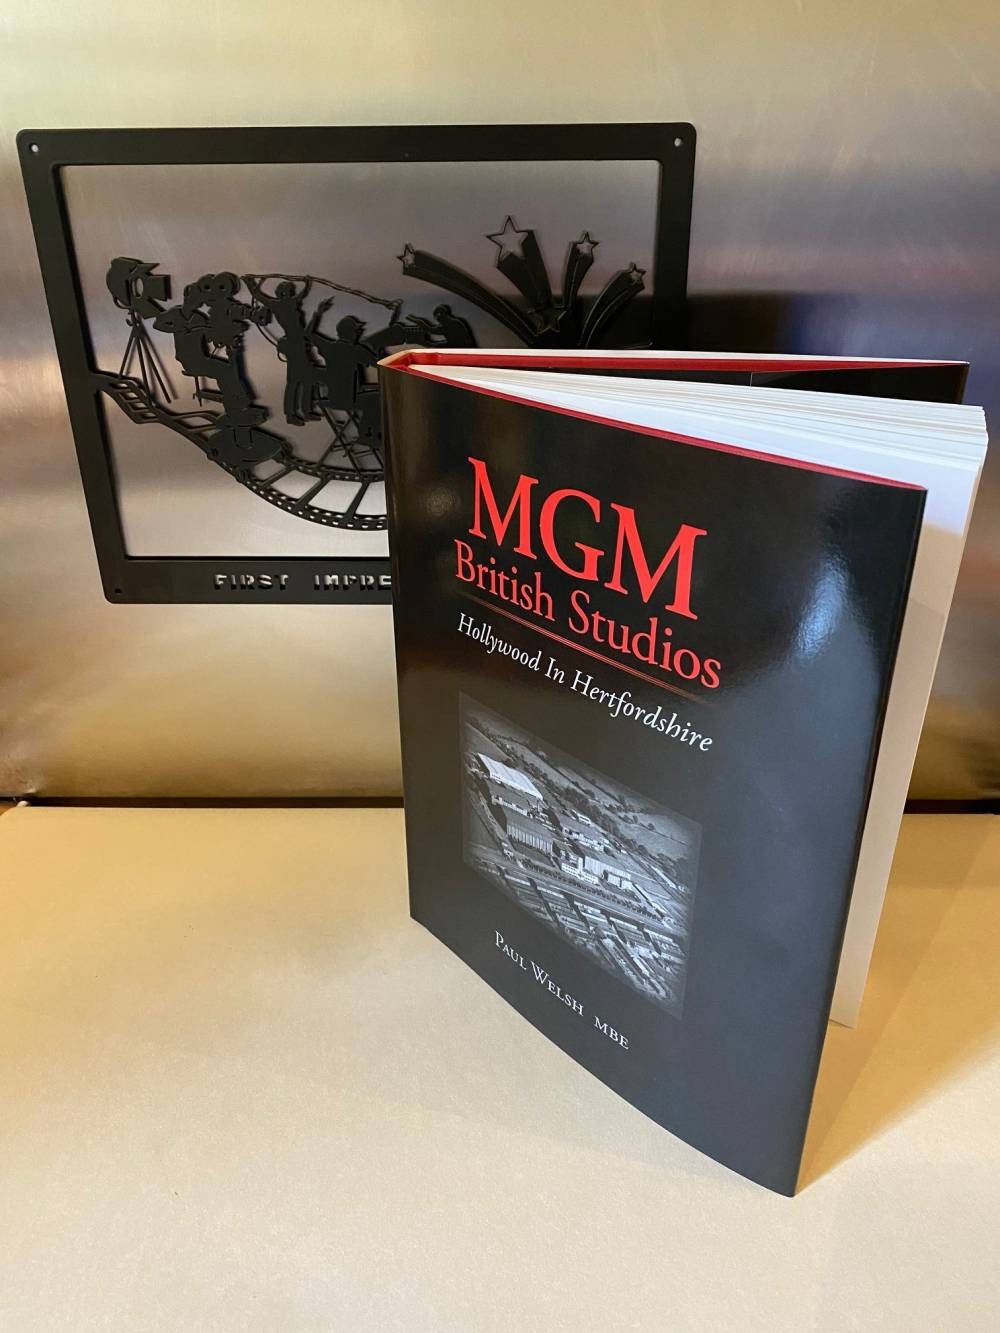 MGM British Studios – finished copies now available to buy